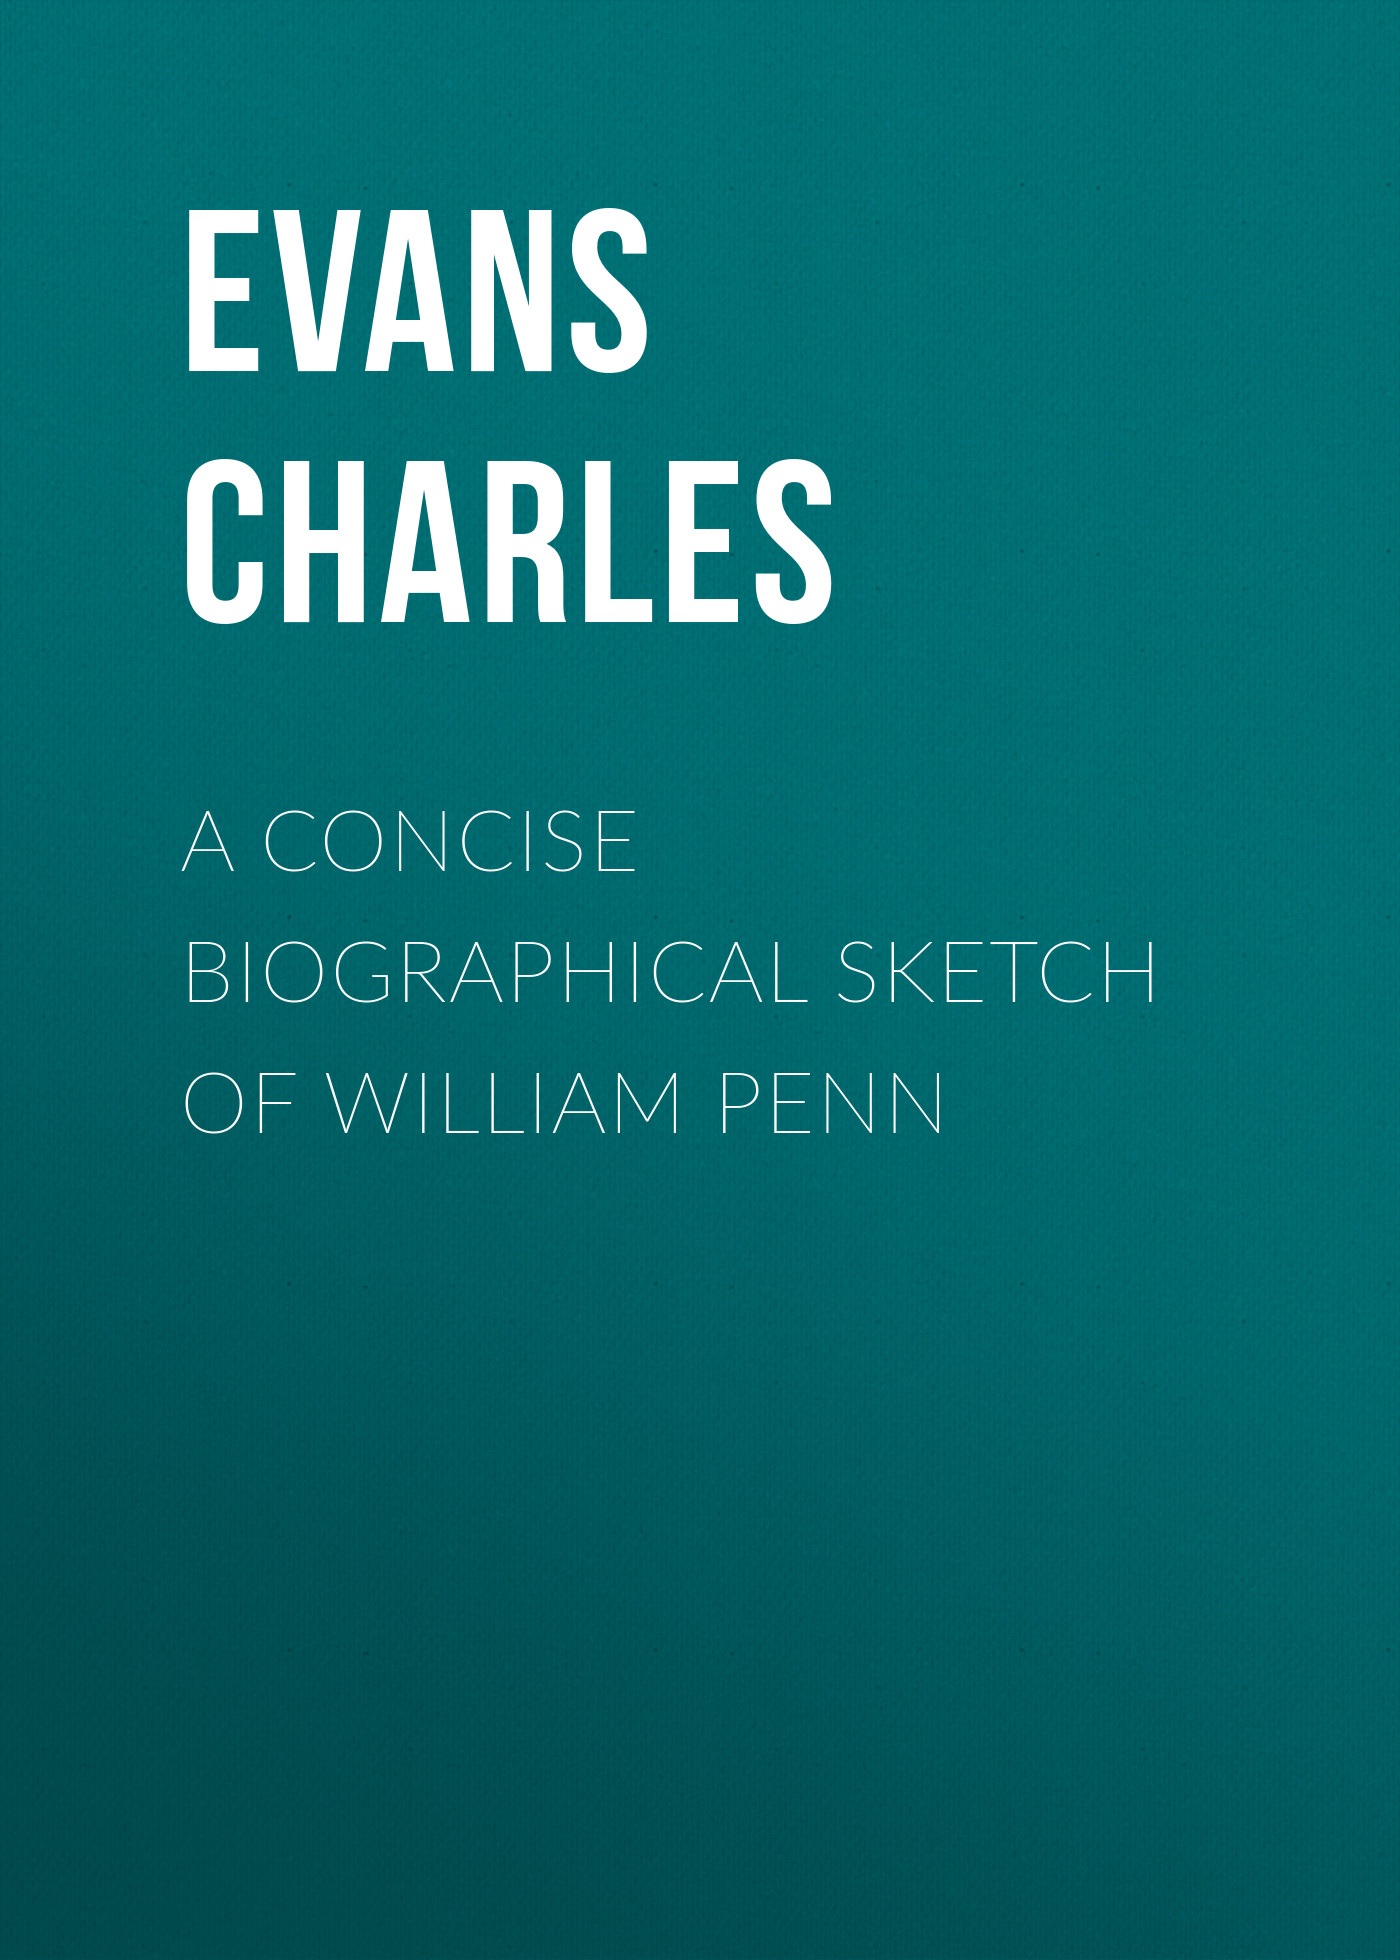 Evans Charles A Concise Biographical Sketch of William Penn